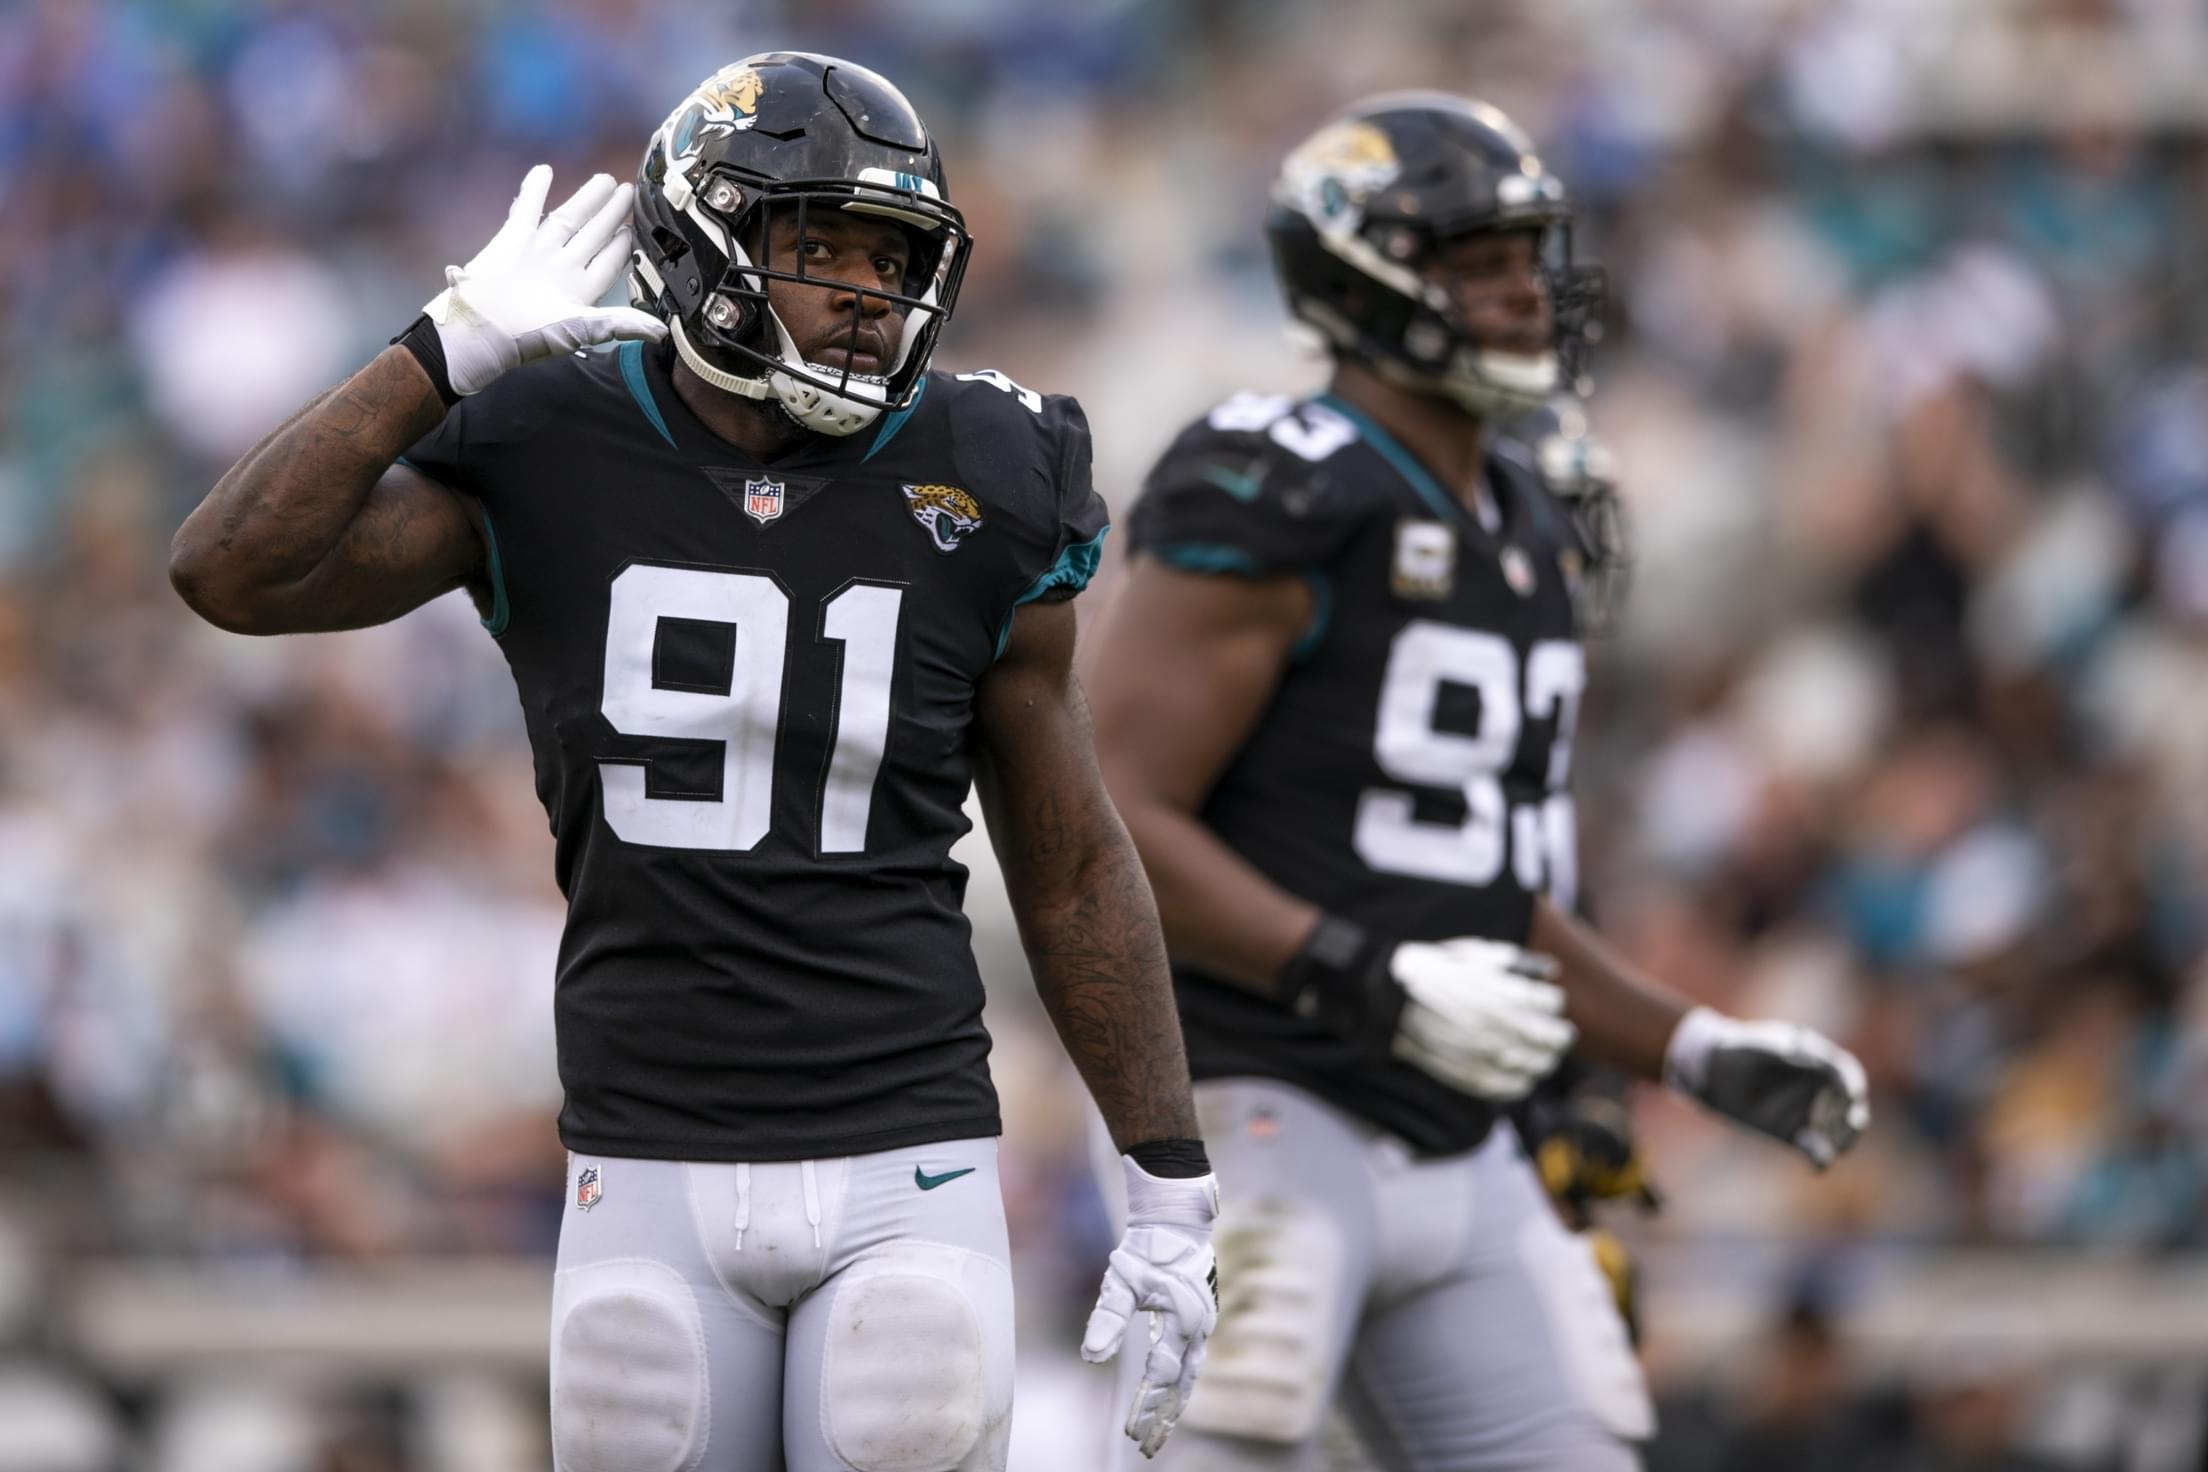 FRANK FRANGIE: Jaguars give Ngakoue his wish and trade him